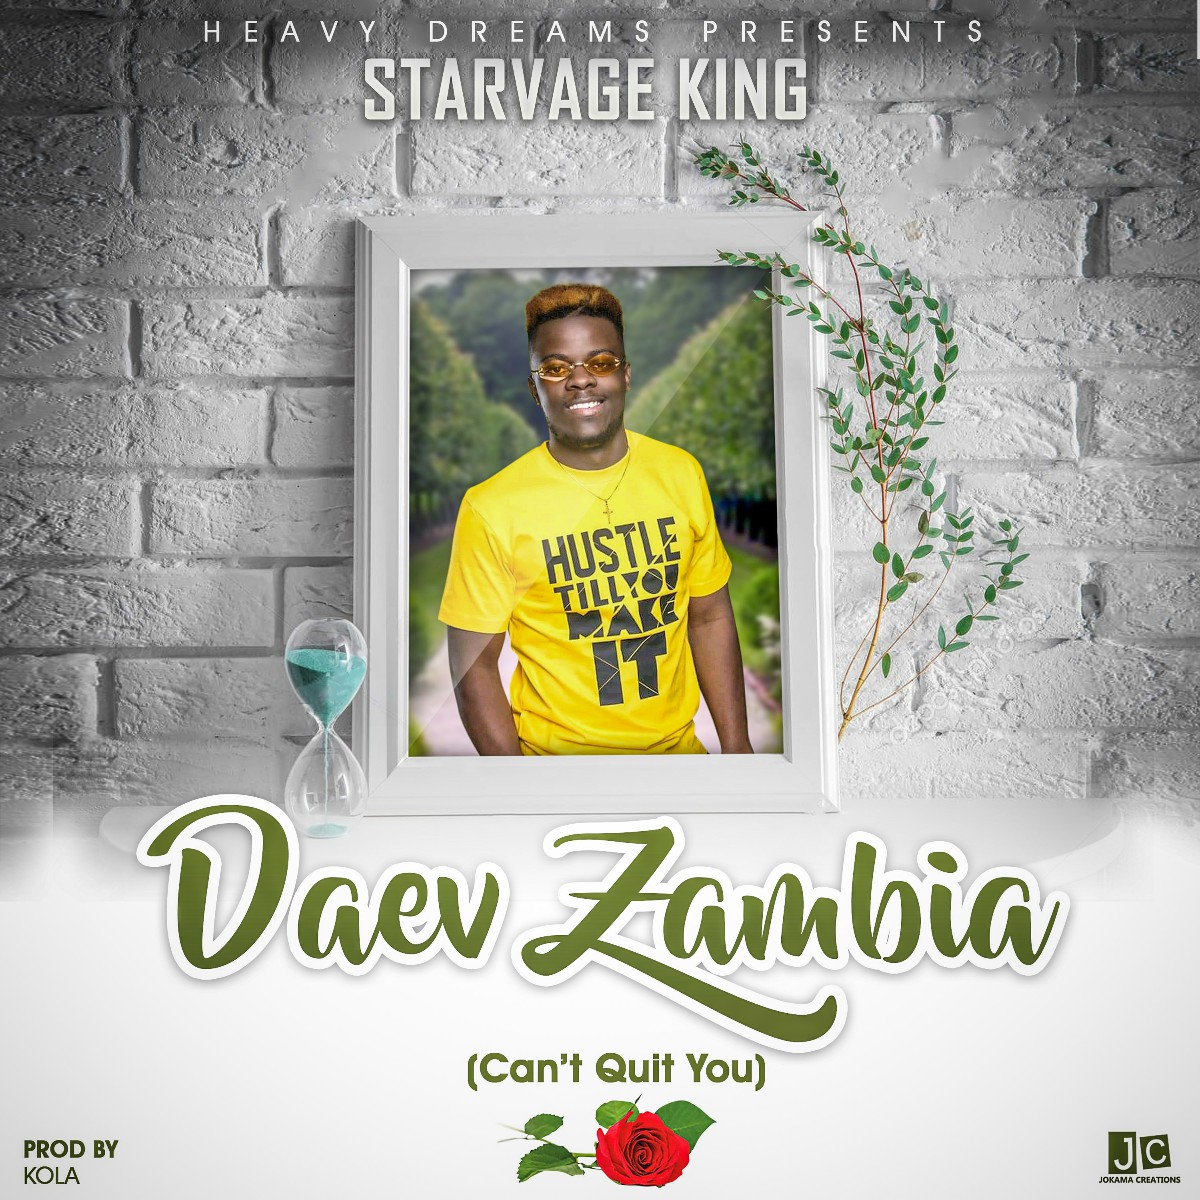 Starvage King - Can't Quit You (Tribute To Daev)